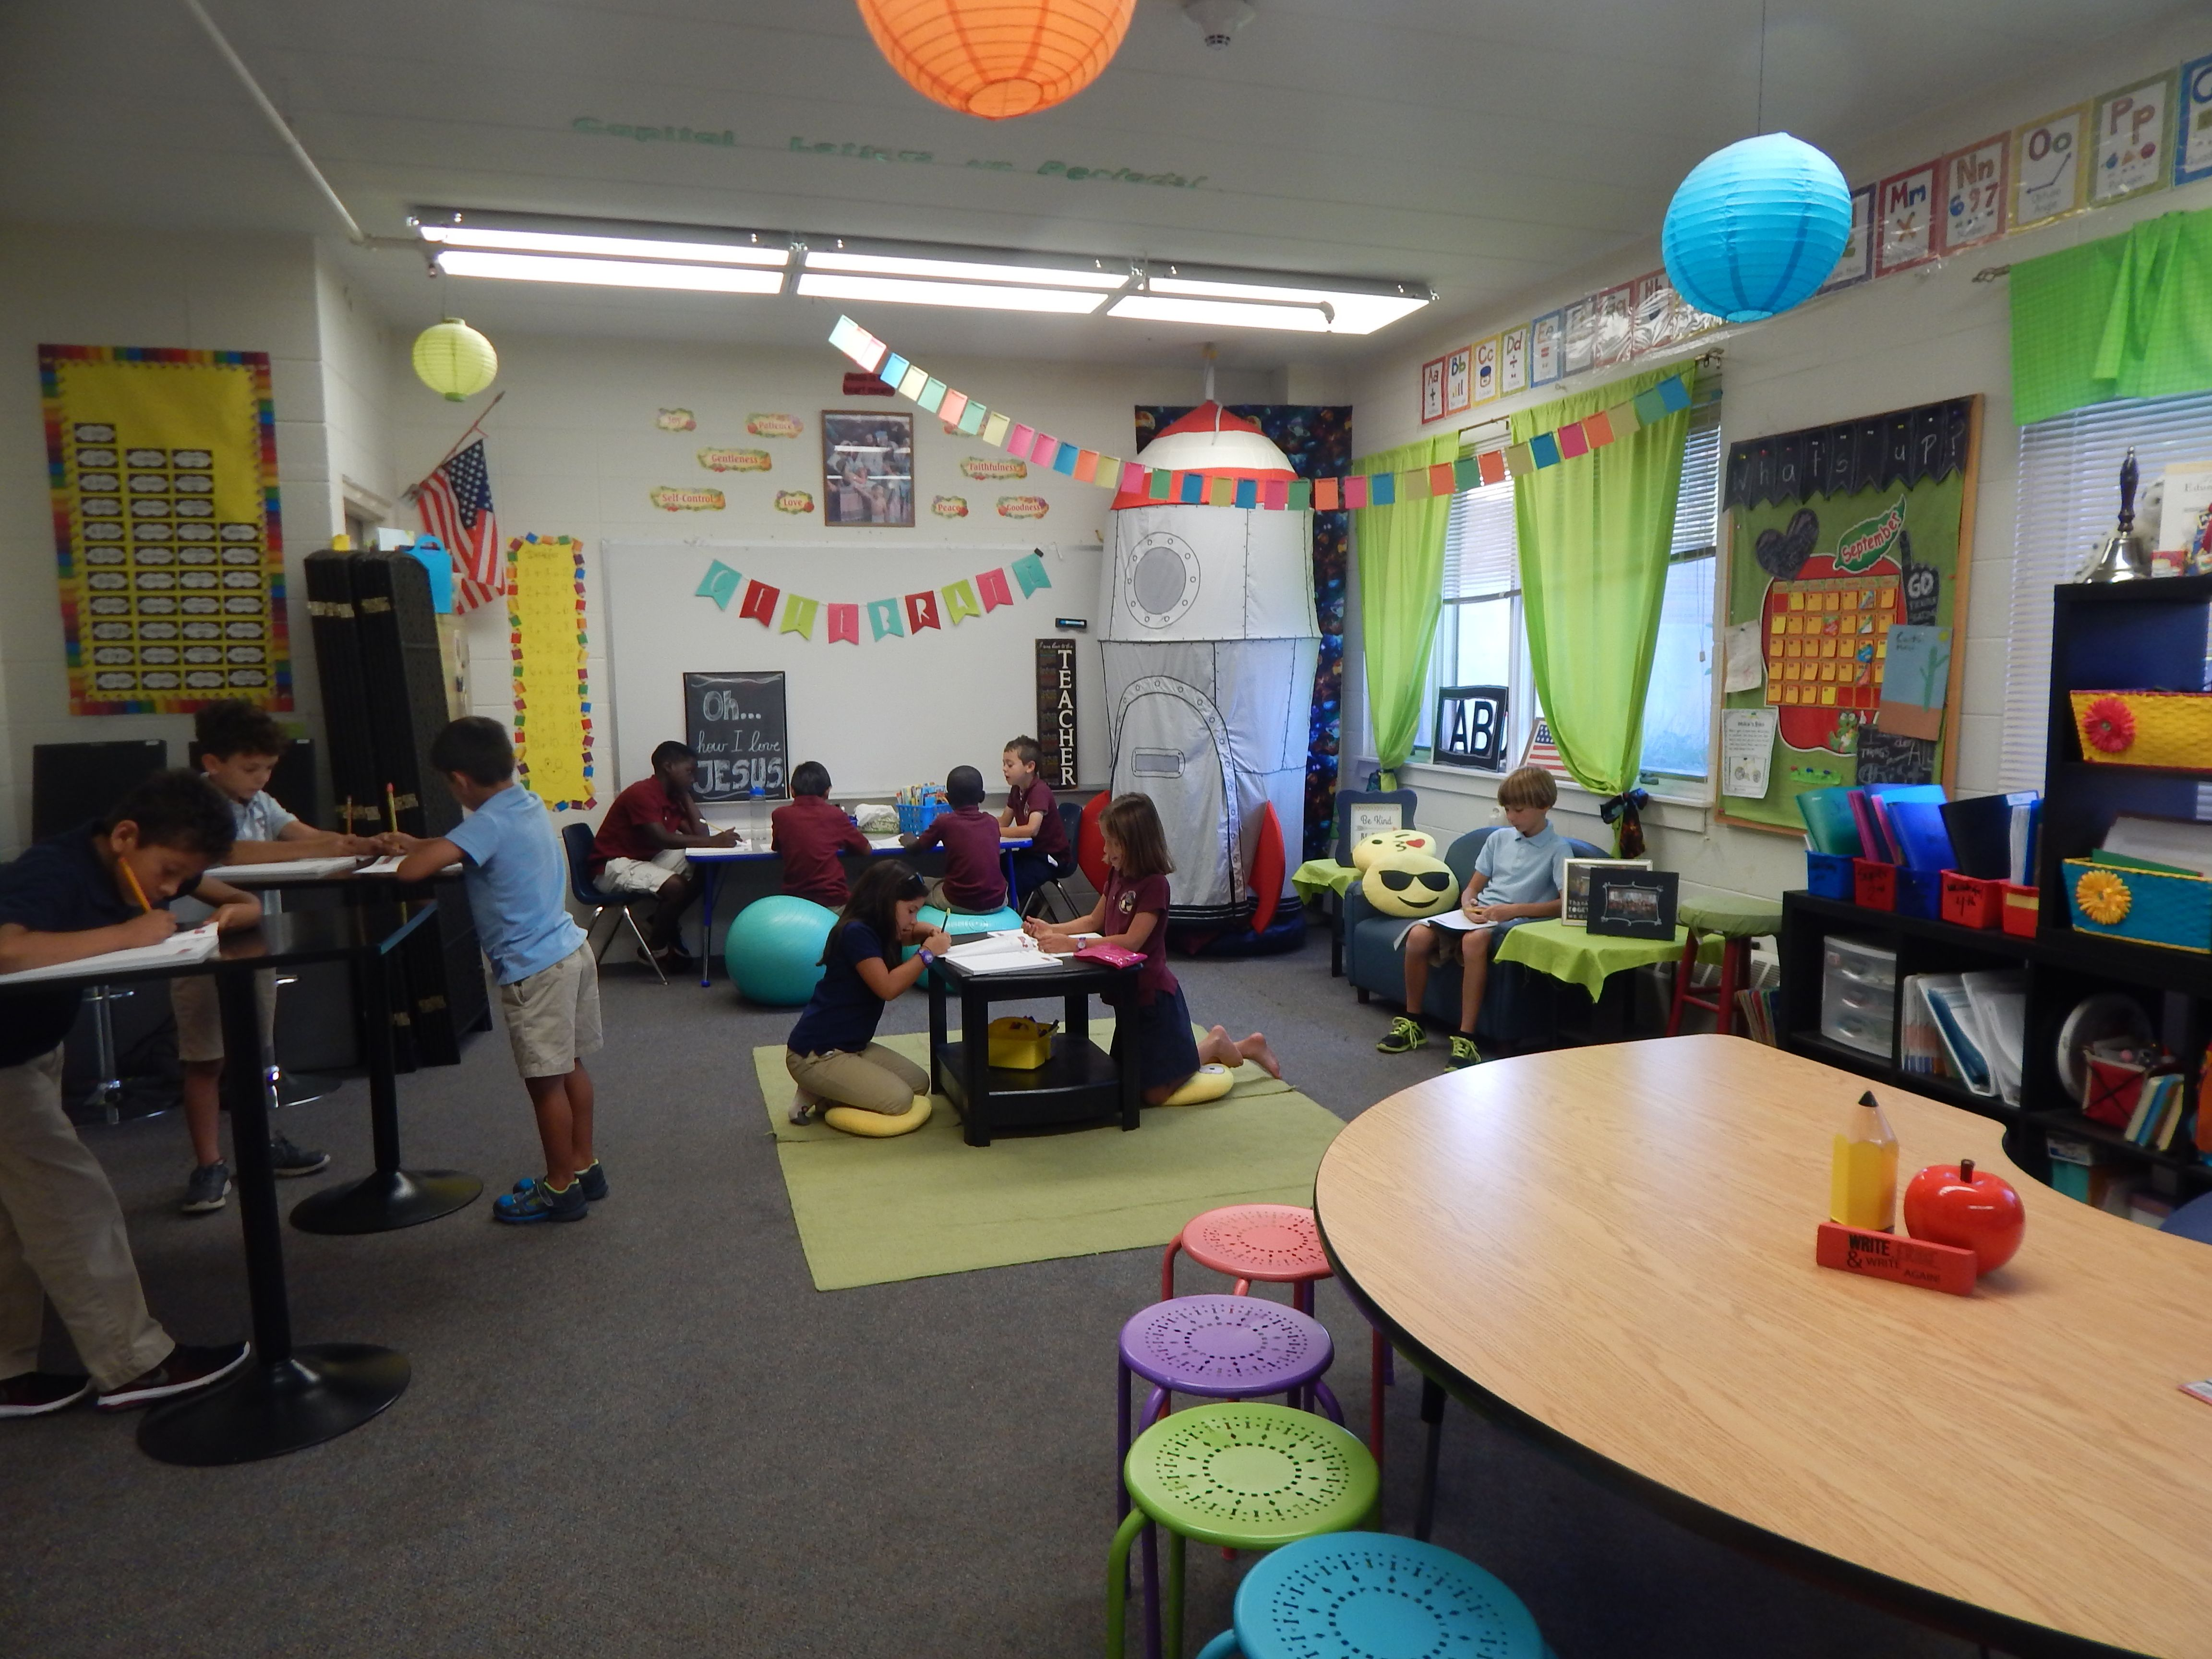 Unconventional Classroom Design : Flexible seating in classrooms standing the classroom